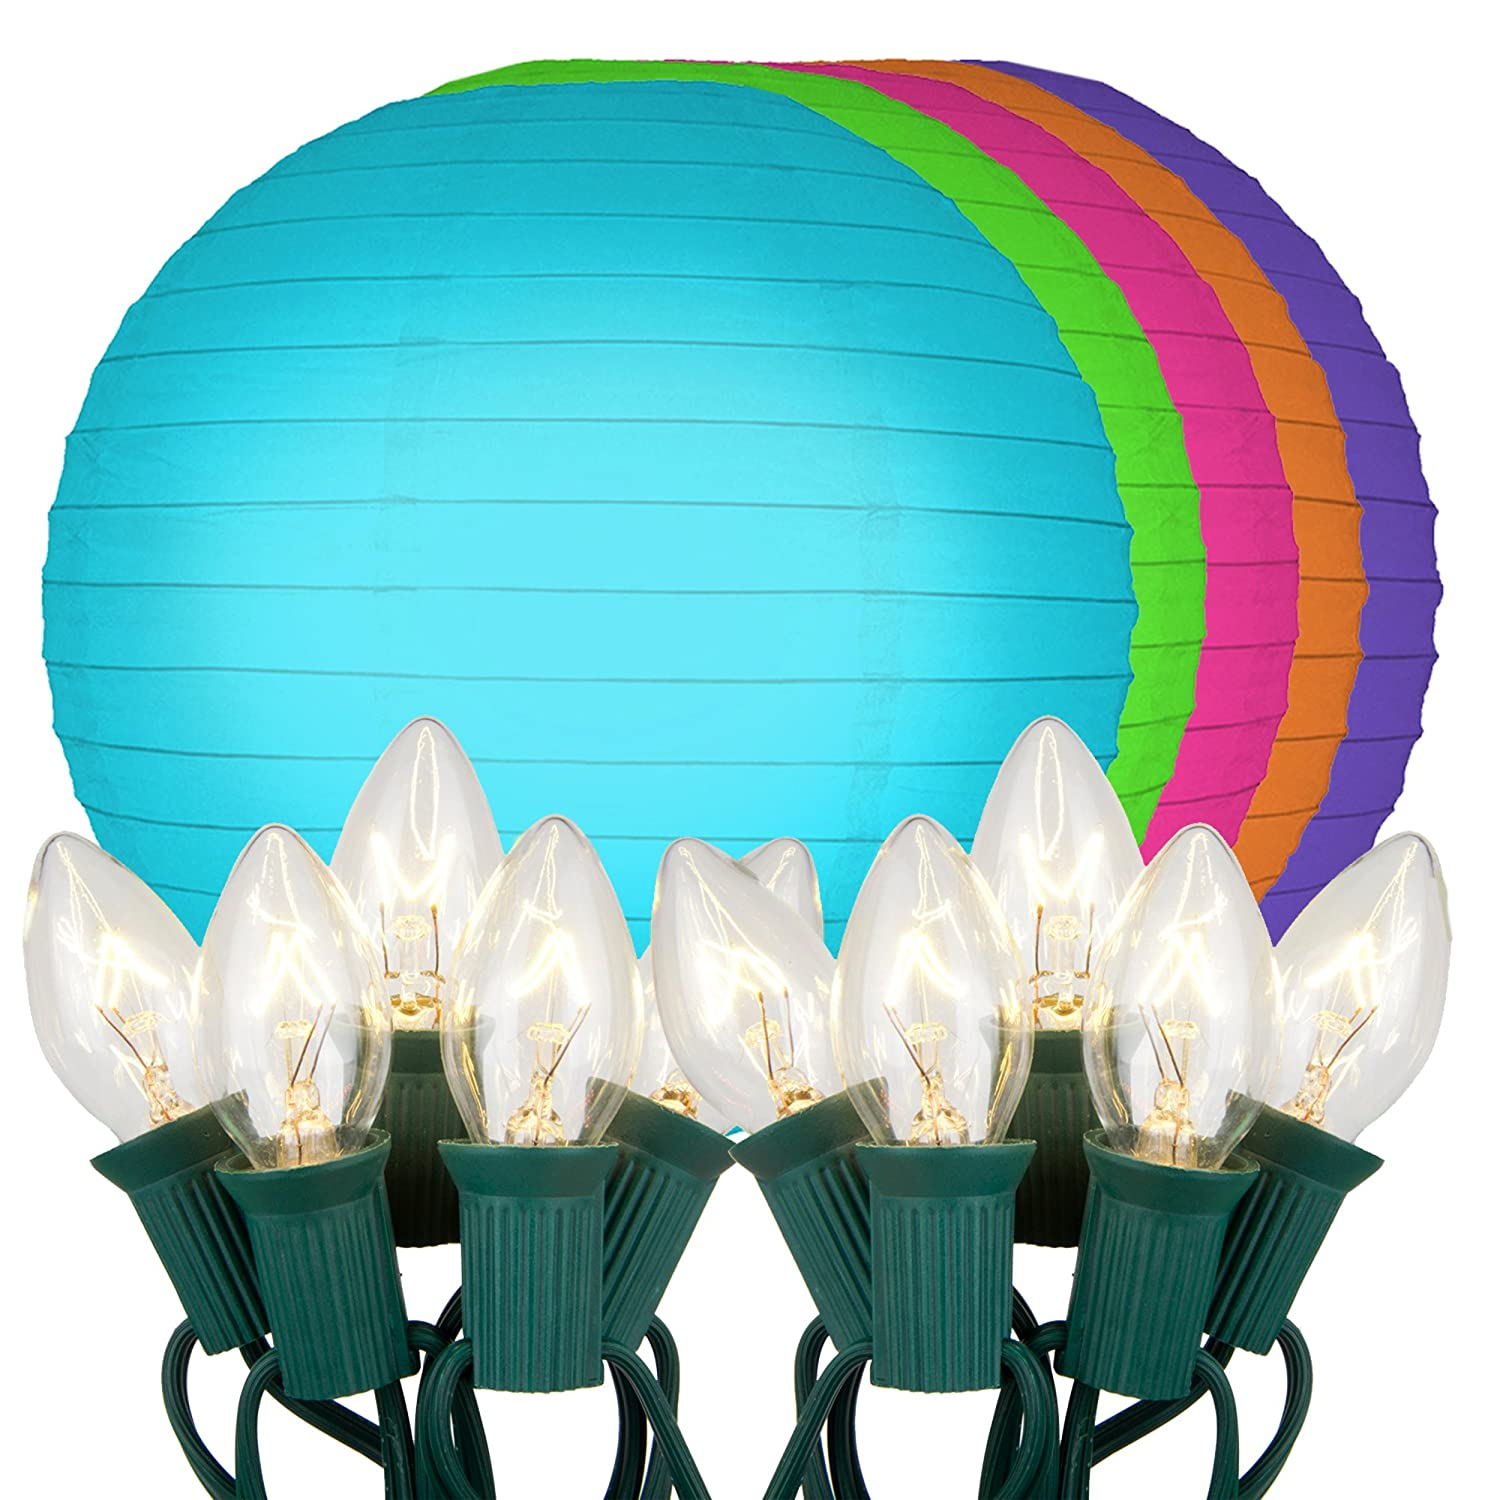 10 Multicolor 10 Lumabase 24910 10 Count Electric String Lights with Paper Lanterns